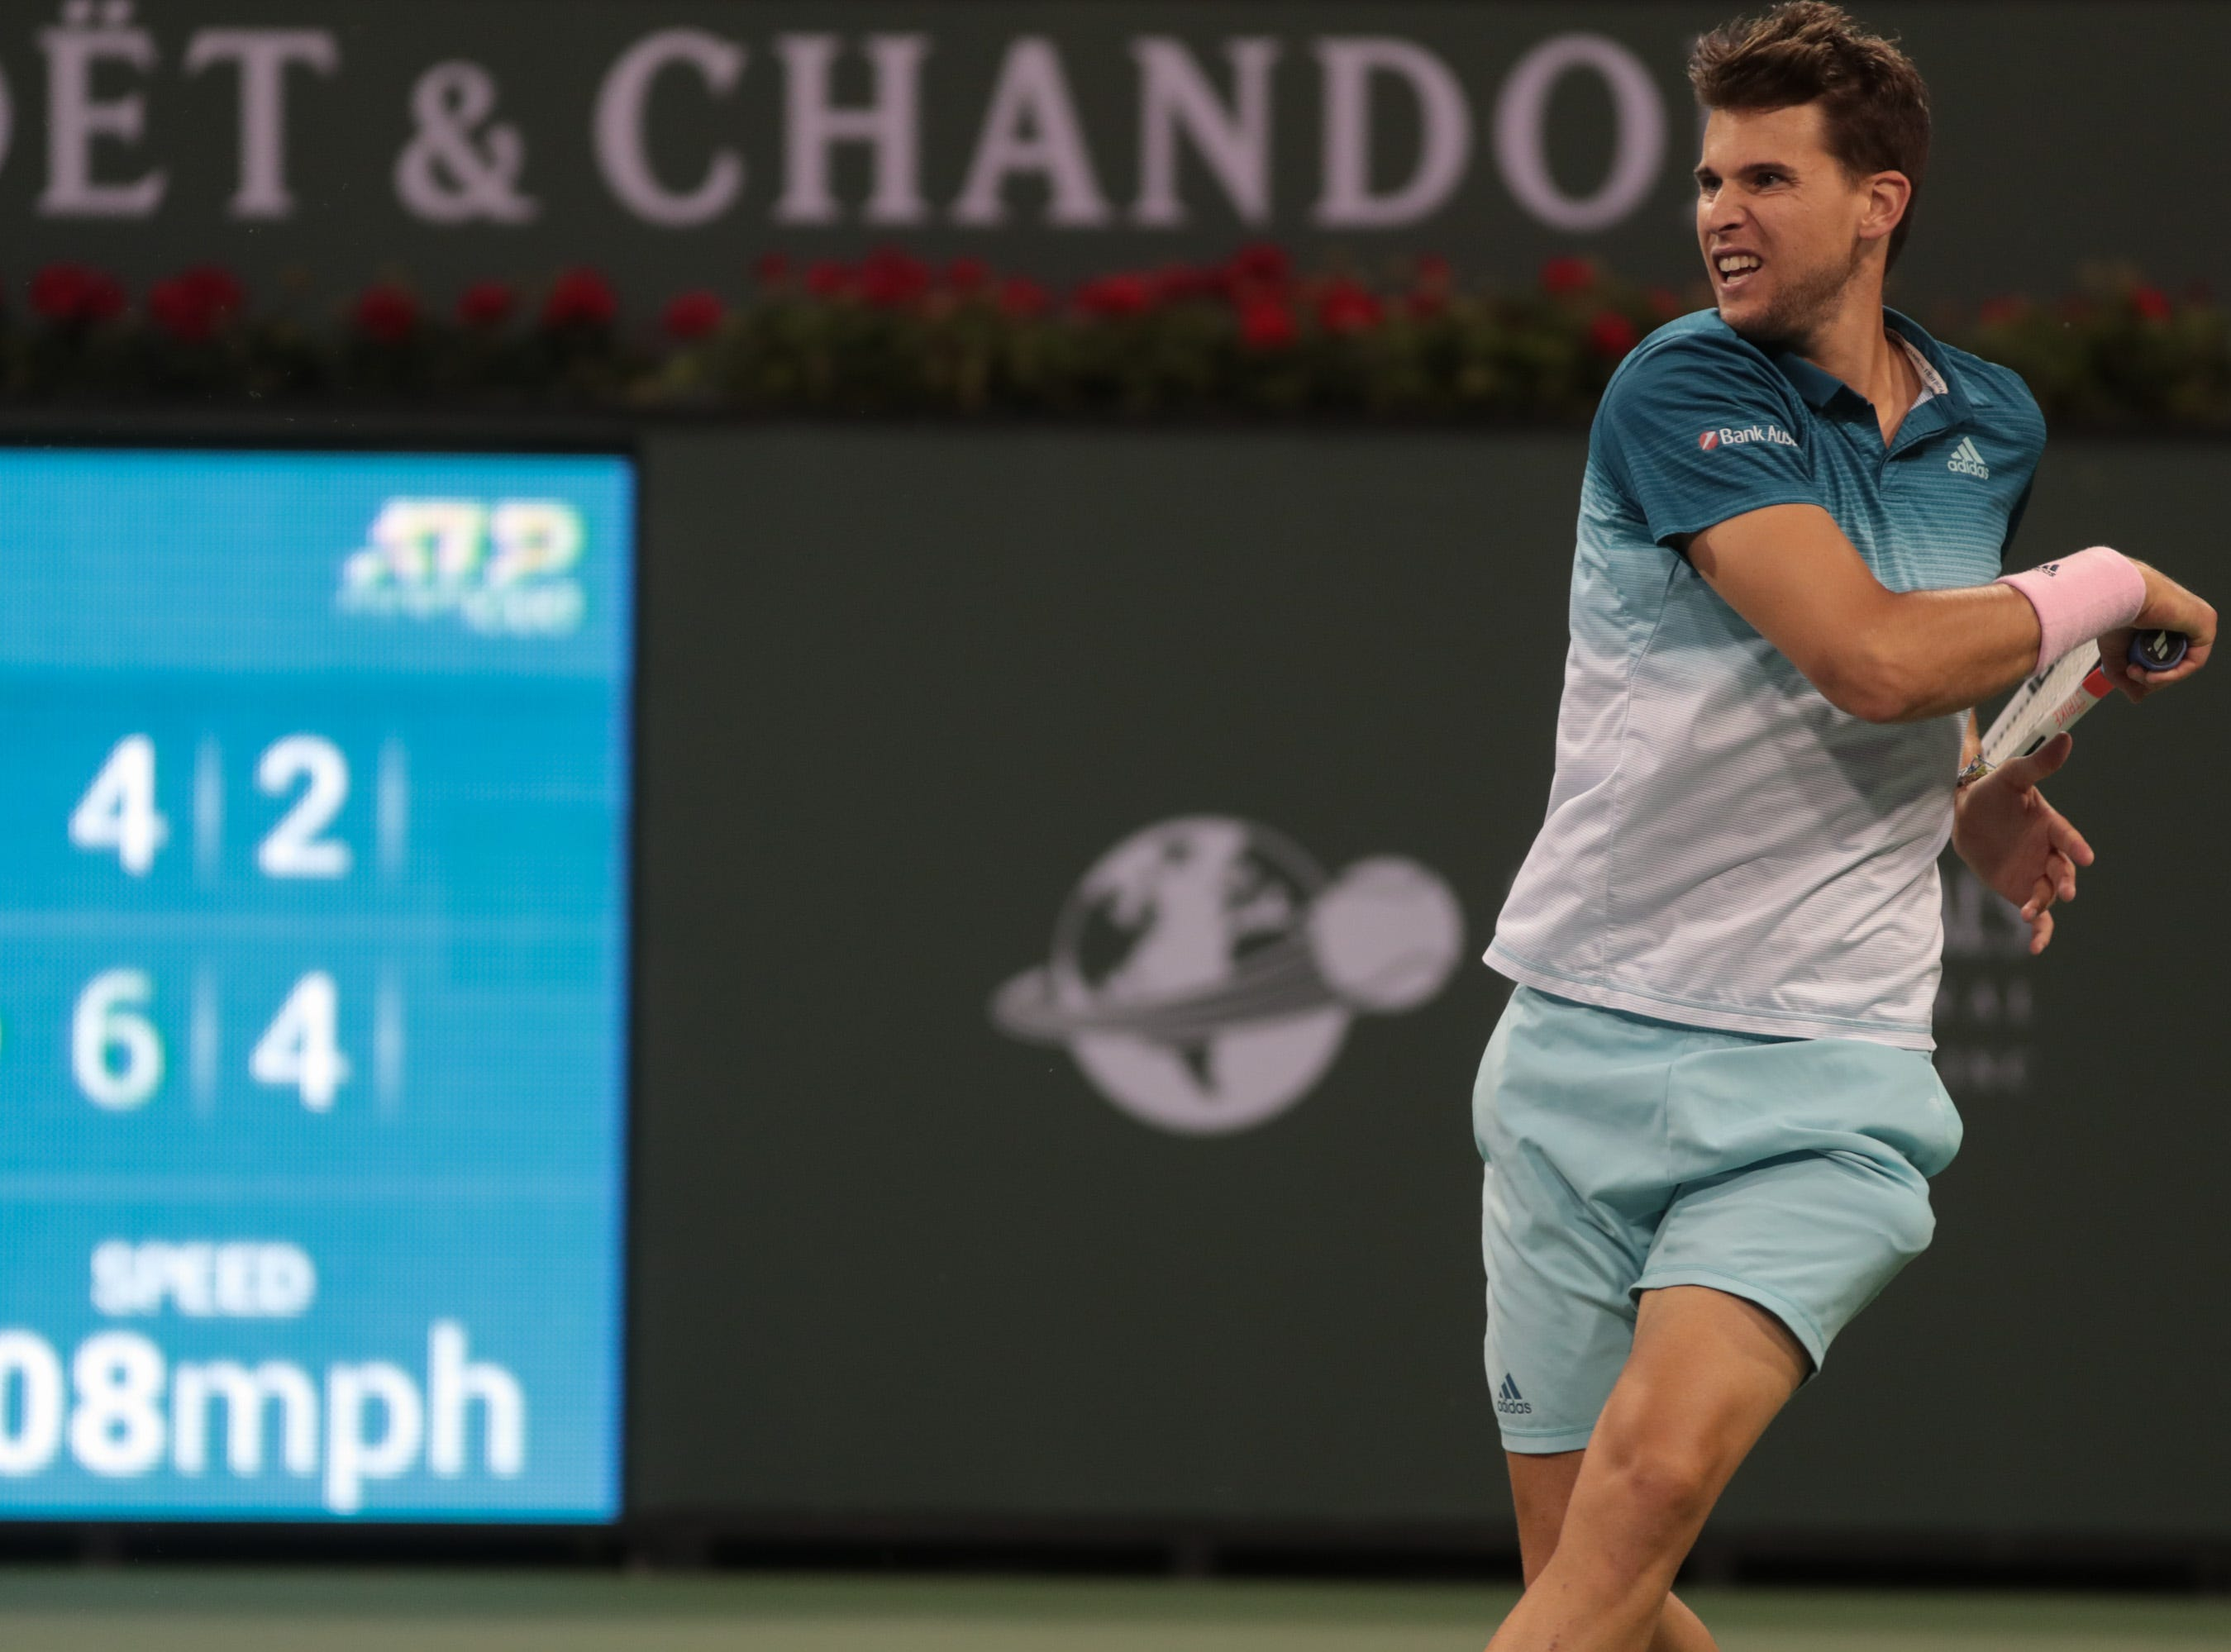 Dominic Thiem hits a forehand to Ivo Karlovic at the BNP Paribas Open in Indian Wells, Calif., March 13, 2019.